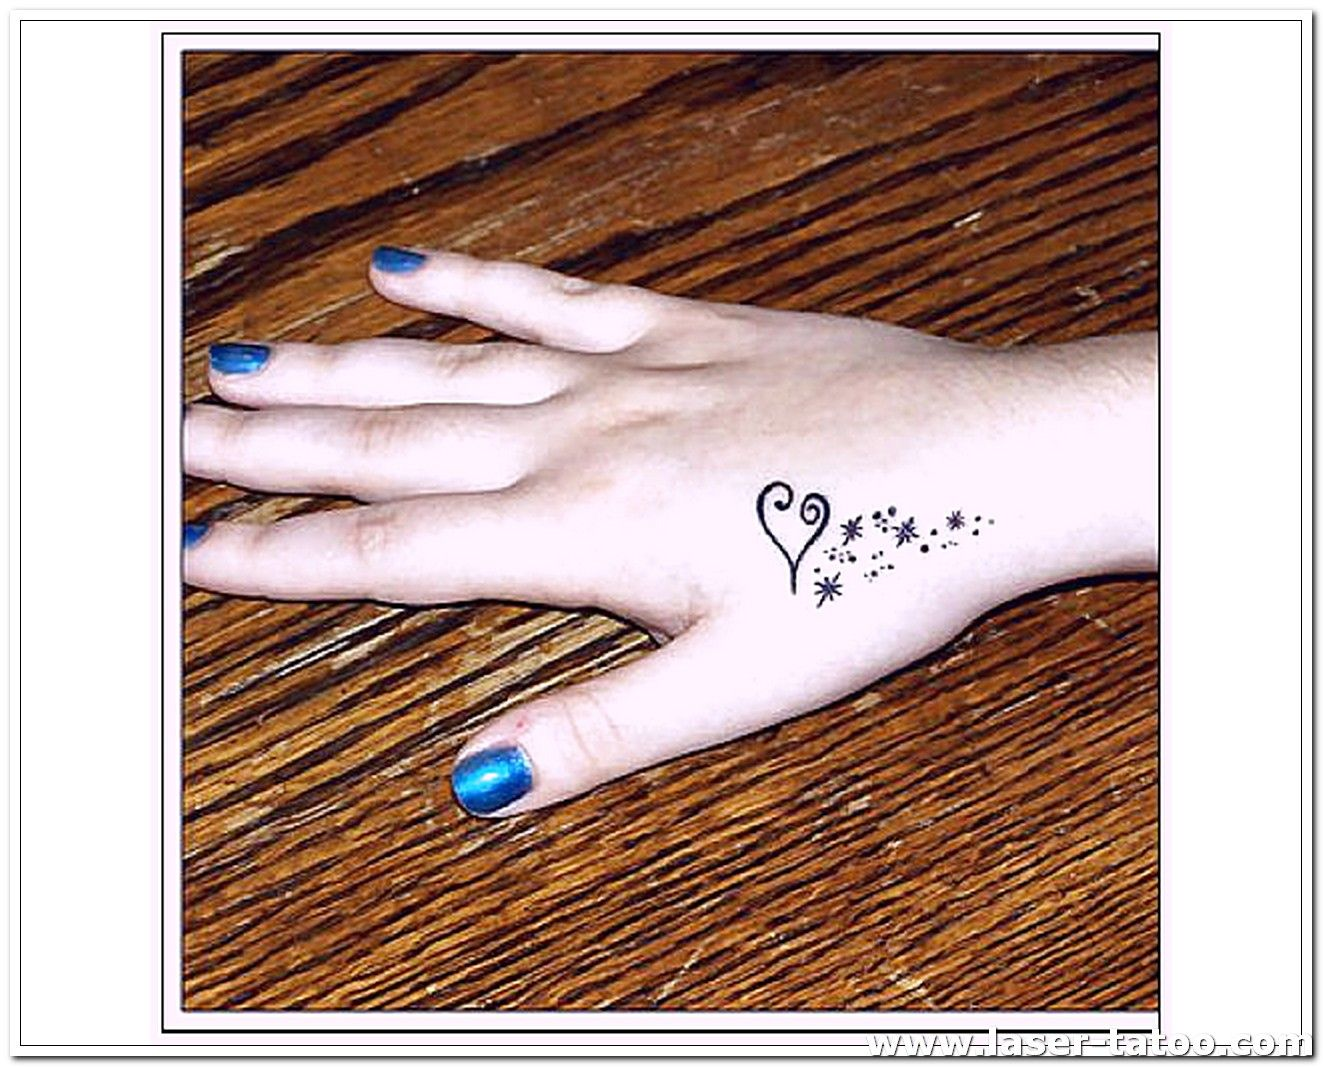 Heart Tattoo Designs For Hand Small Tattoos Girls Star Tattoos Star Tattoo On Hand Hand Heart Tattoo